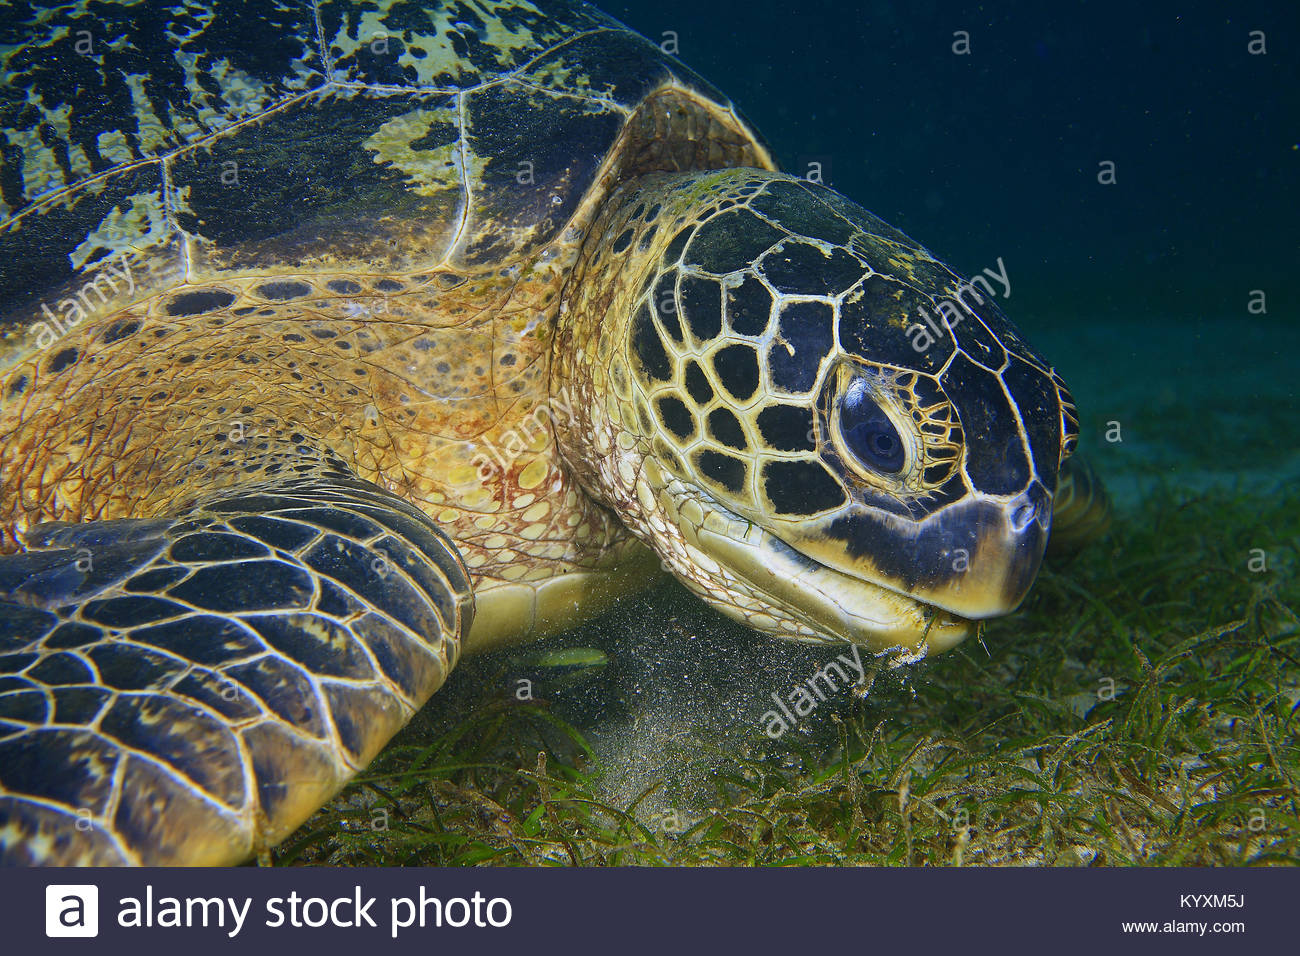 Green sea turtle (Chelonia mydas) feeding on sea grass, Sabang beach, Mindoro island, Philippines, Asia - Stock Image